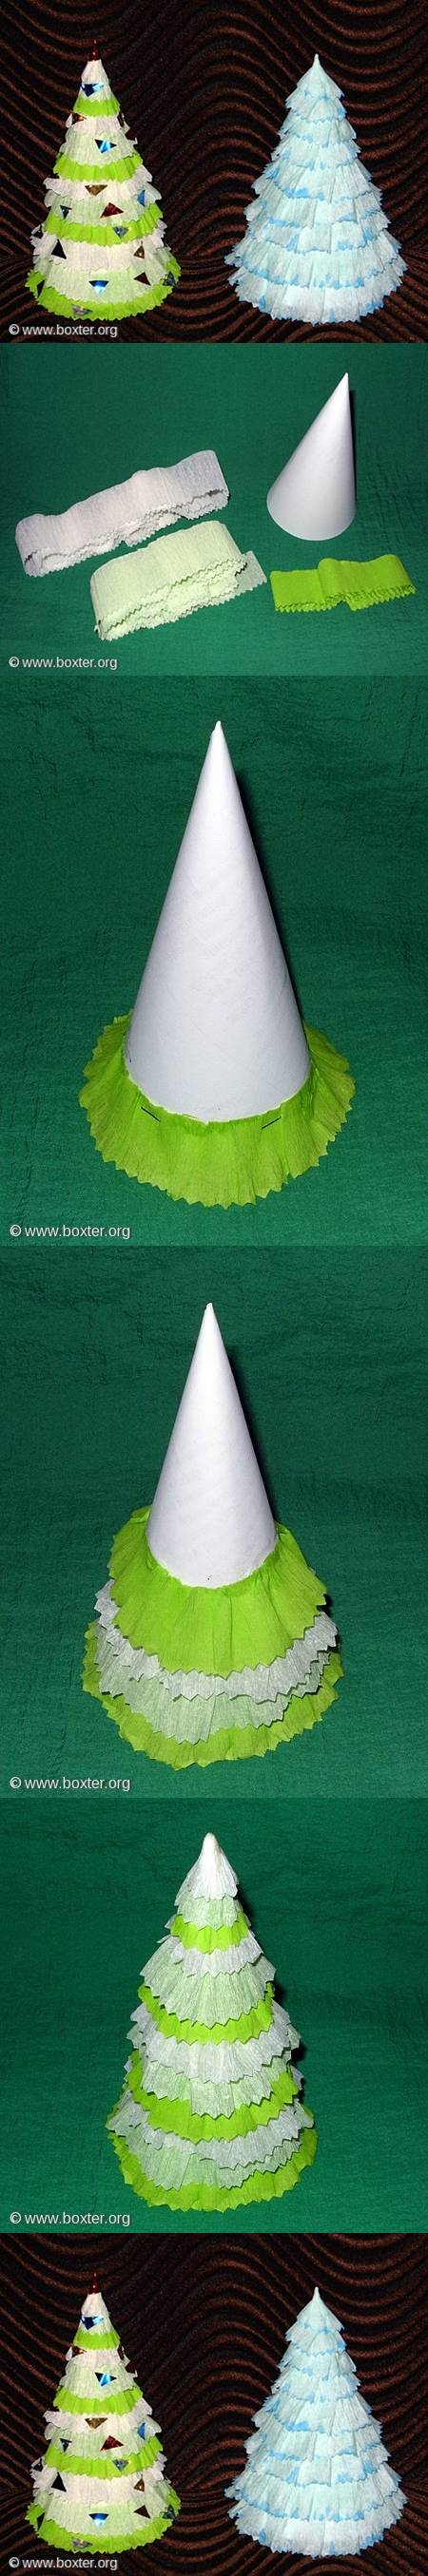 How to make Crepe Paper Christmas Tree step by step DIY tutorial instructions